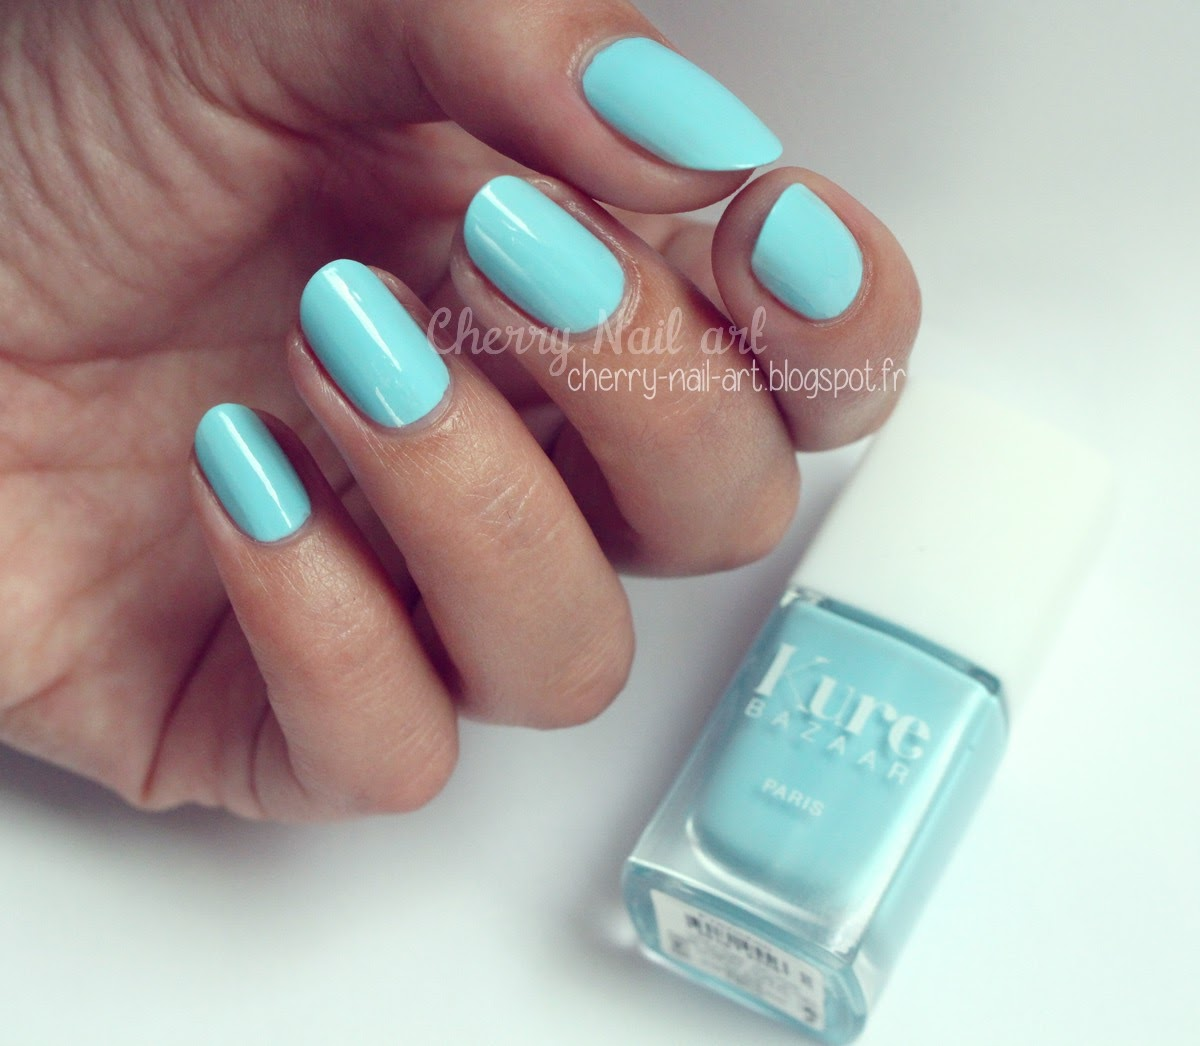 vernis Kure bazaar Frenchie